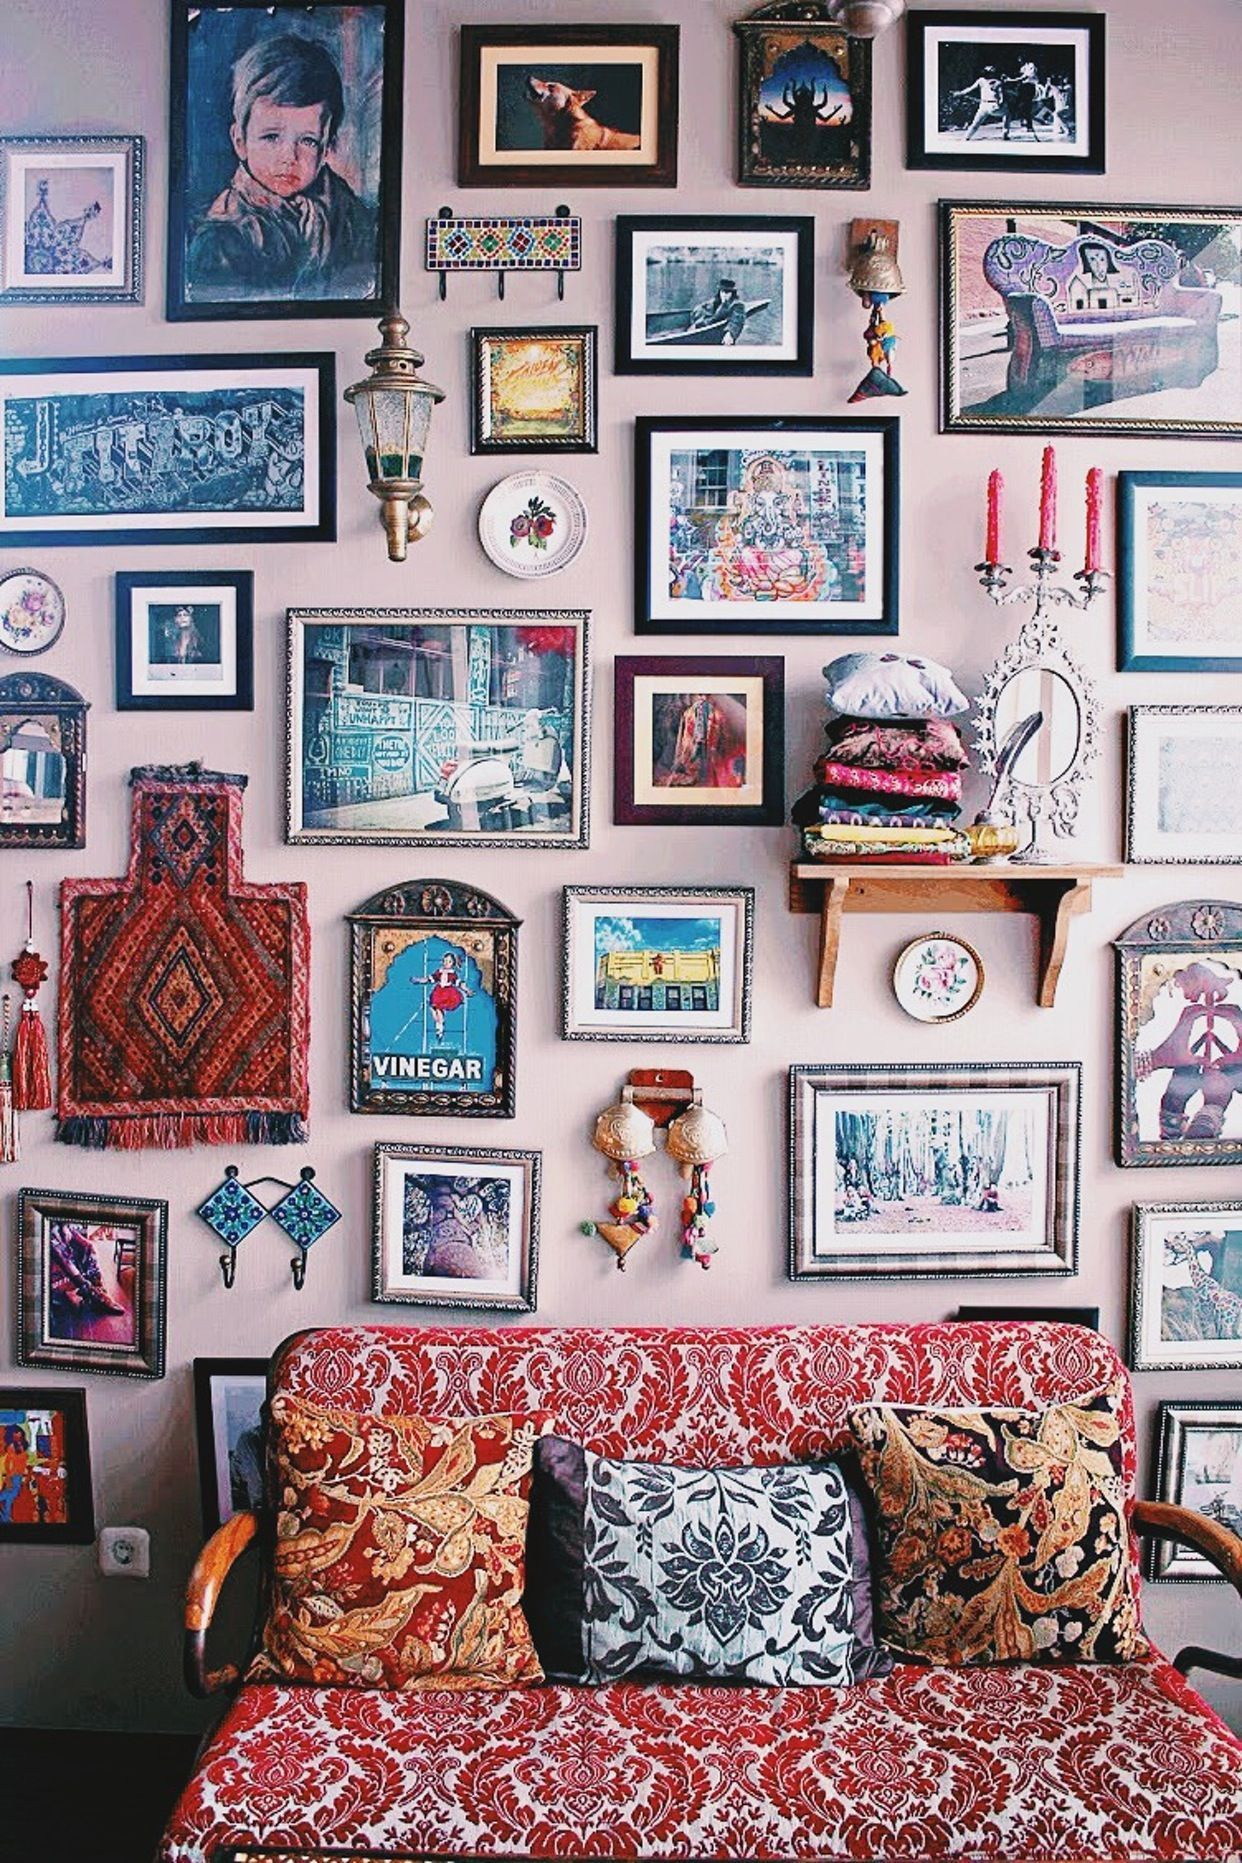 Bohemian style home décor has always been trendy, but it seems to have taken on a whole new level of popularity lately. And with good reason... the beautif #homedecor #decorideas